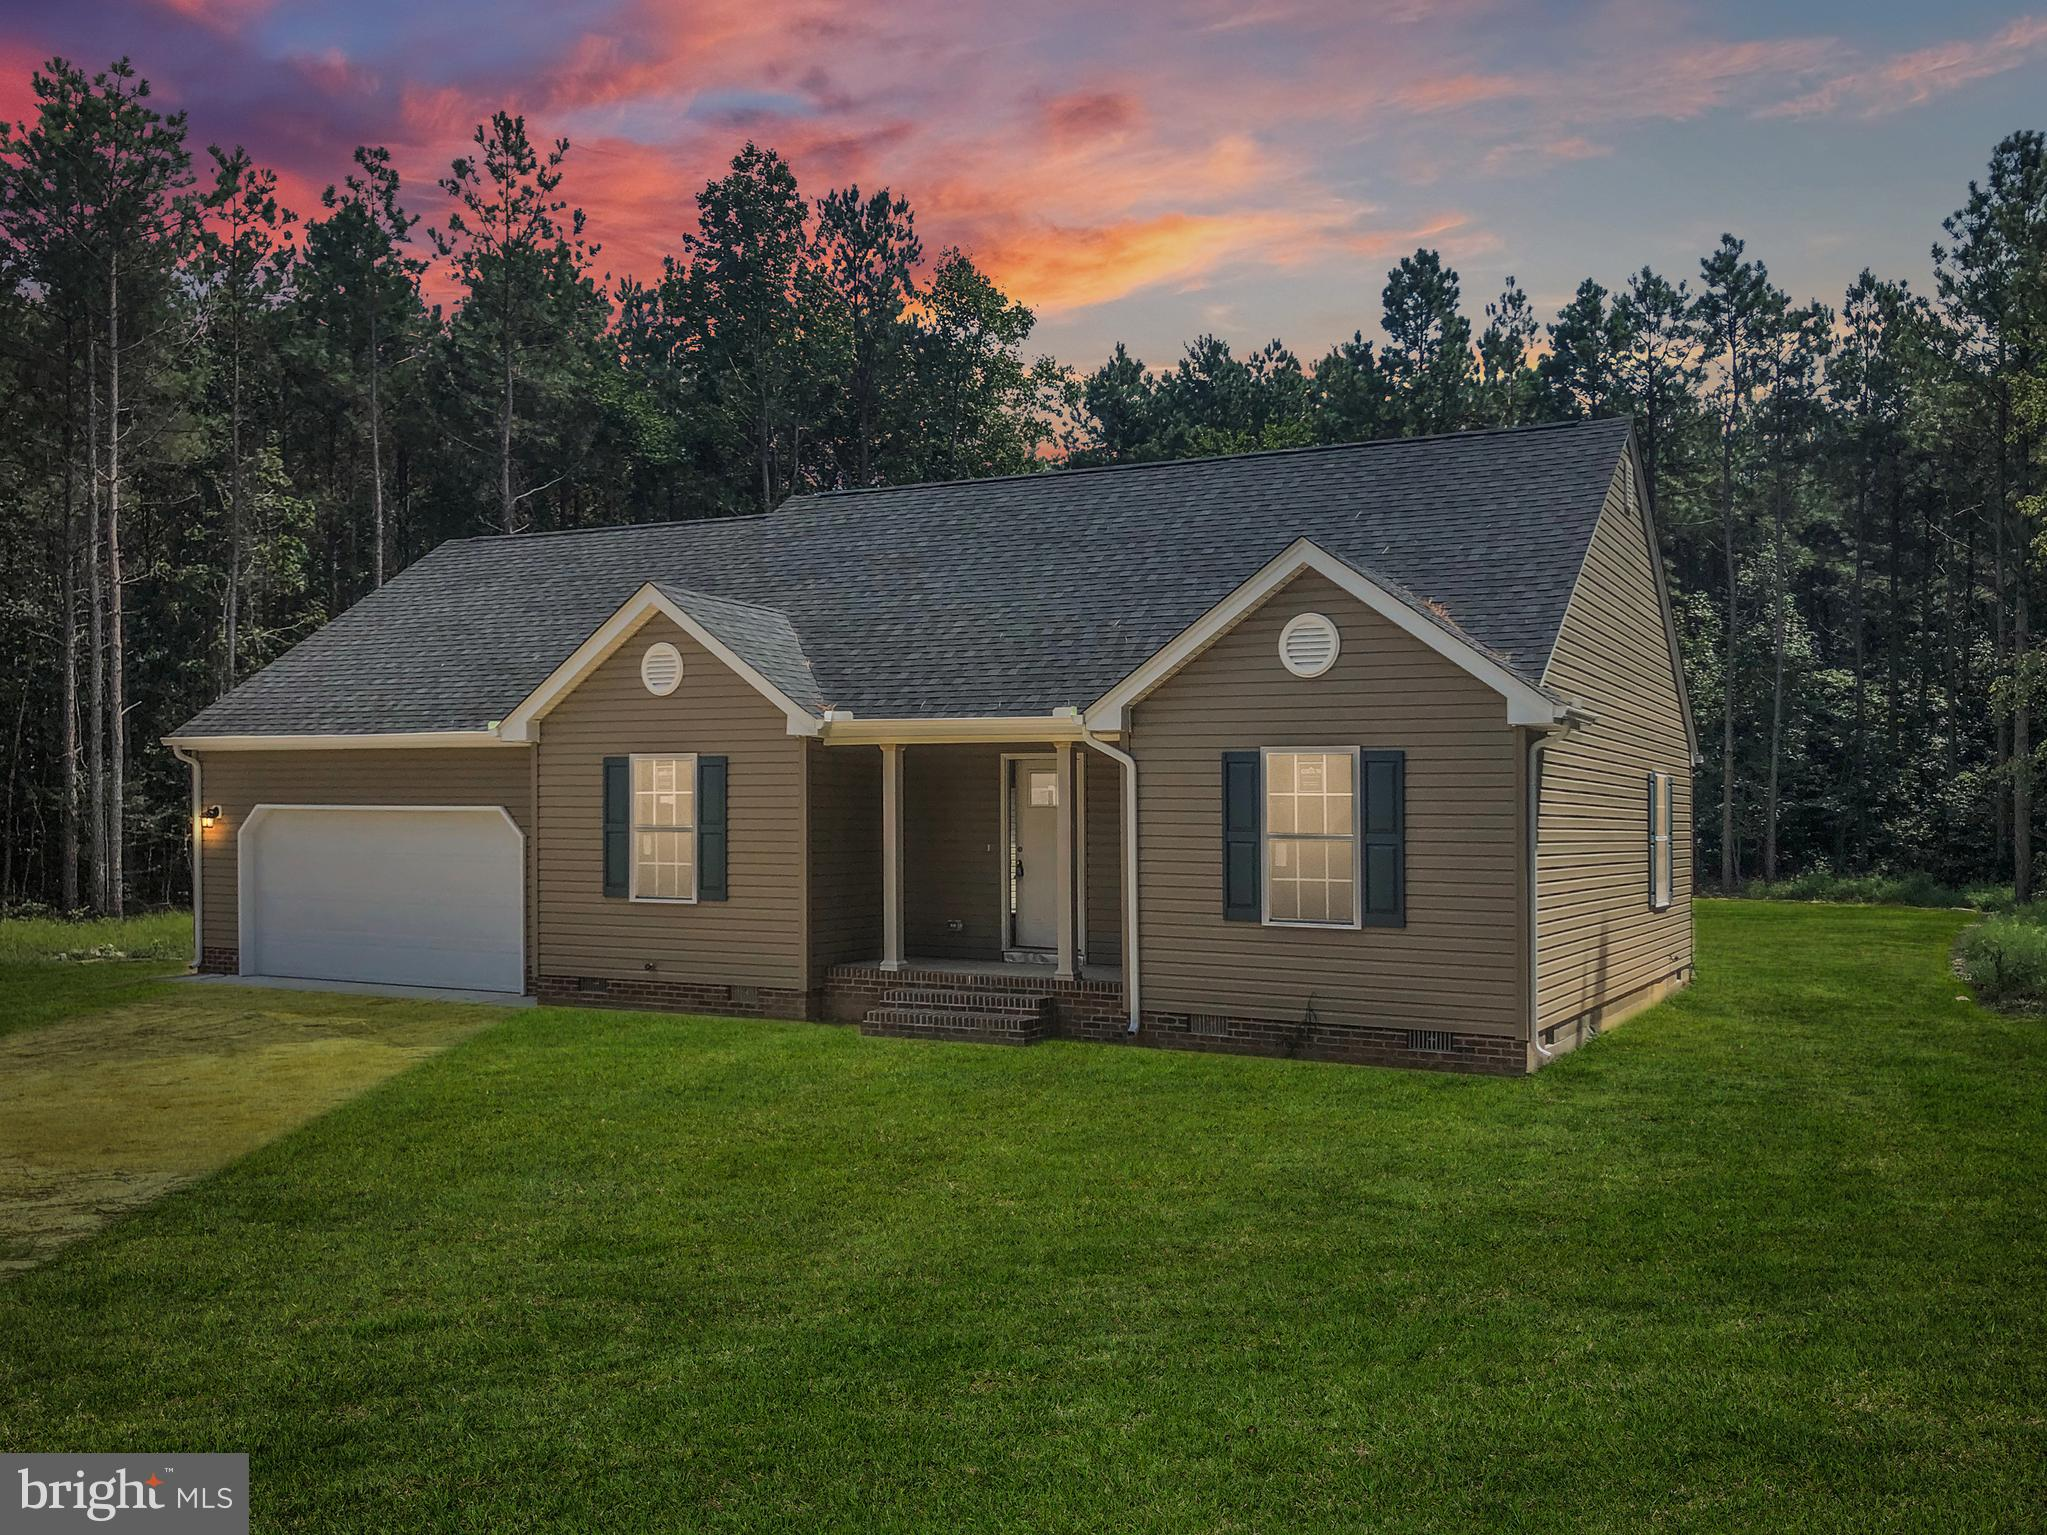 New construction rancher style home located in Clearbrooke Estates.  Open concept living, spacious k